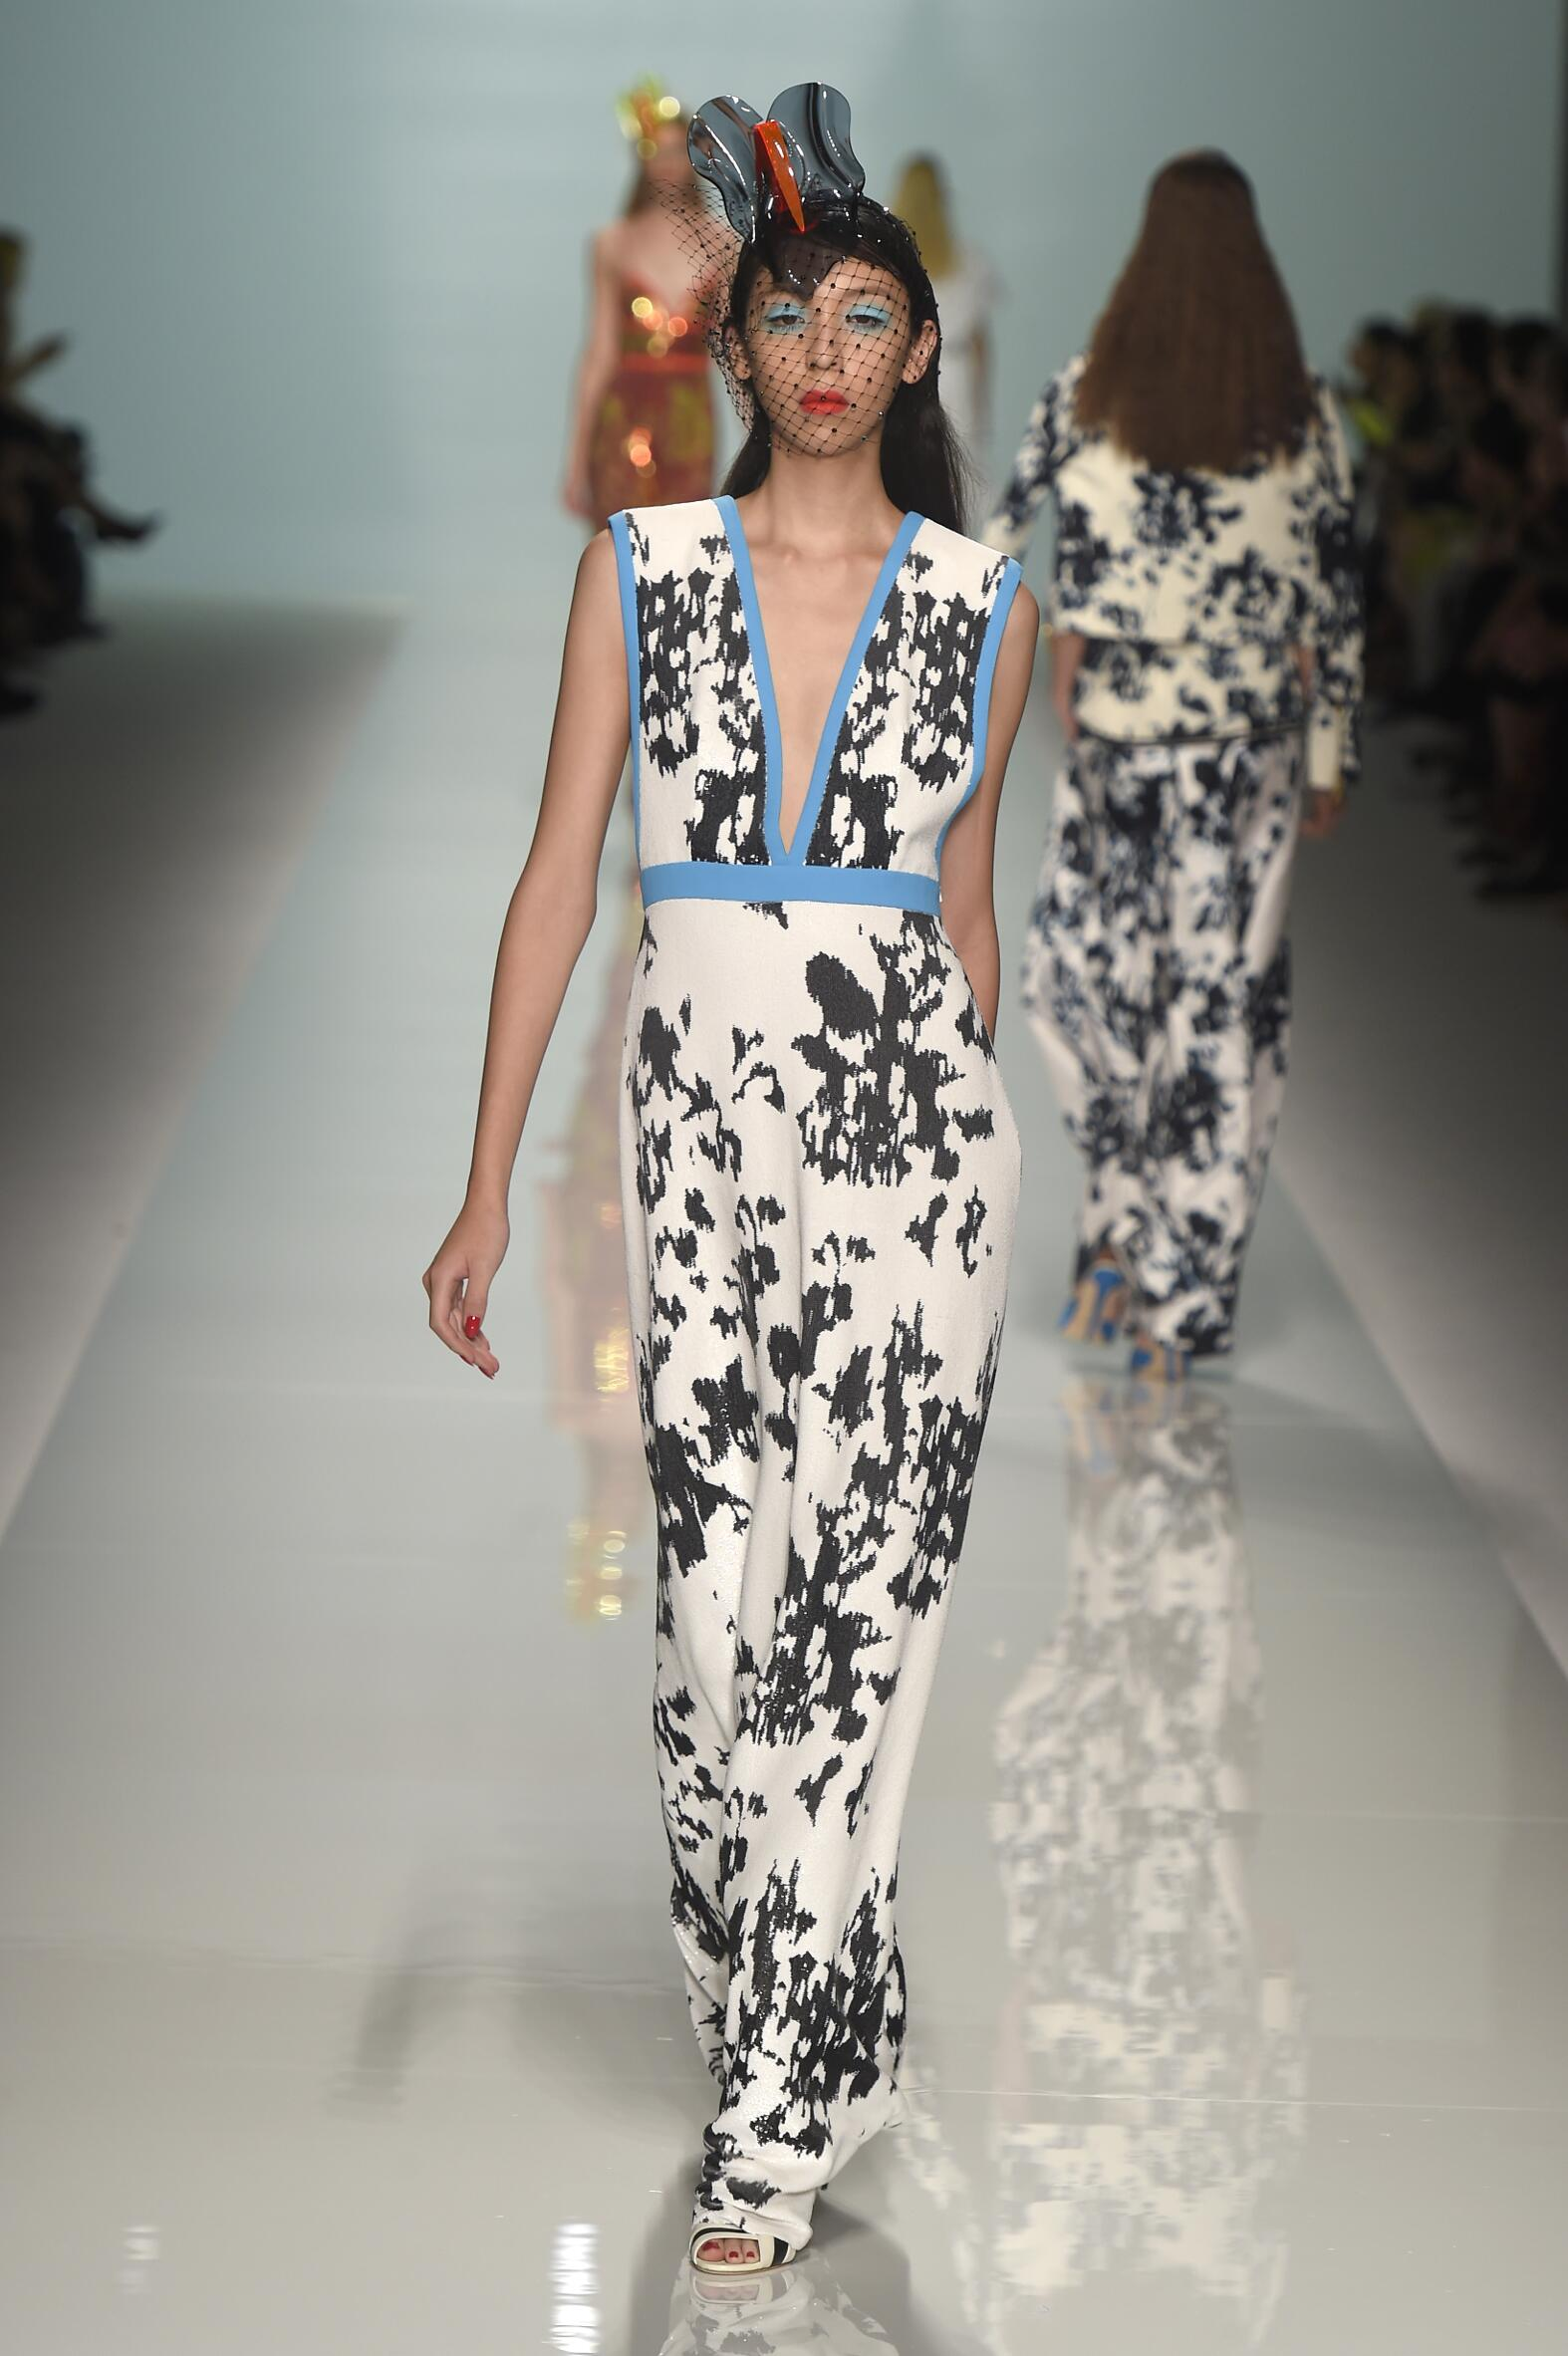 2015 Catwalk Emanuel Ungaro Woman Fashion Show Summer